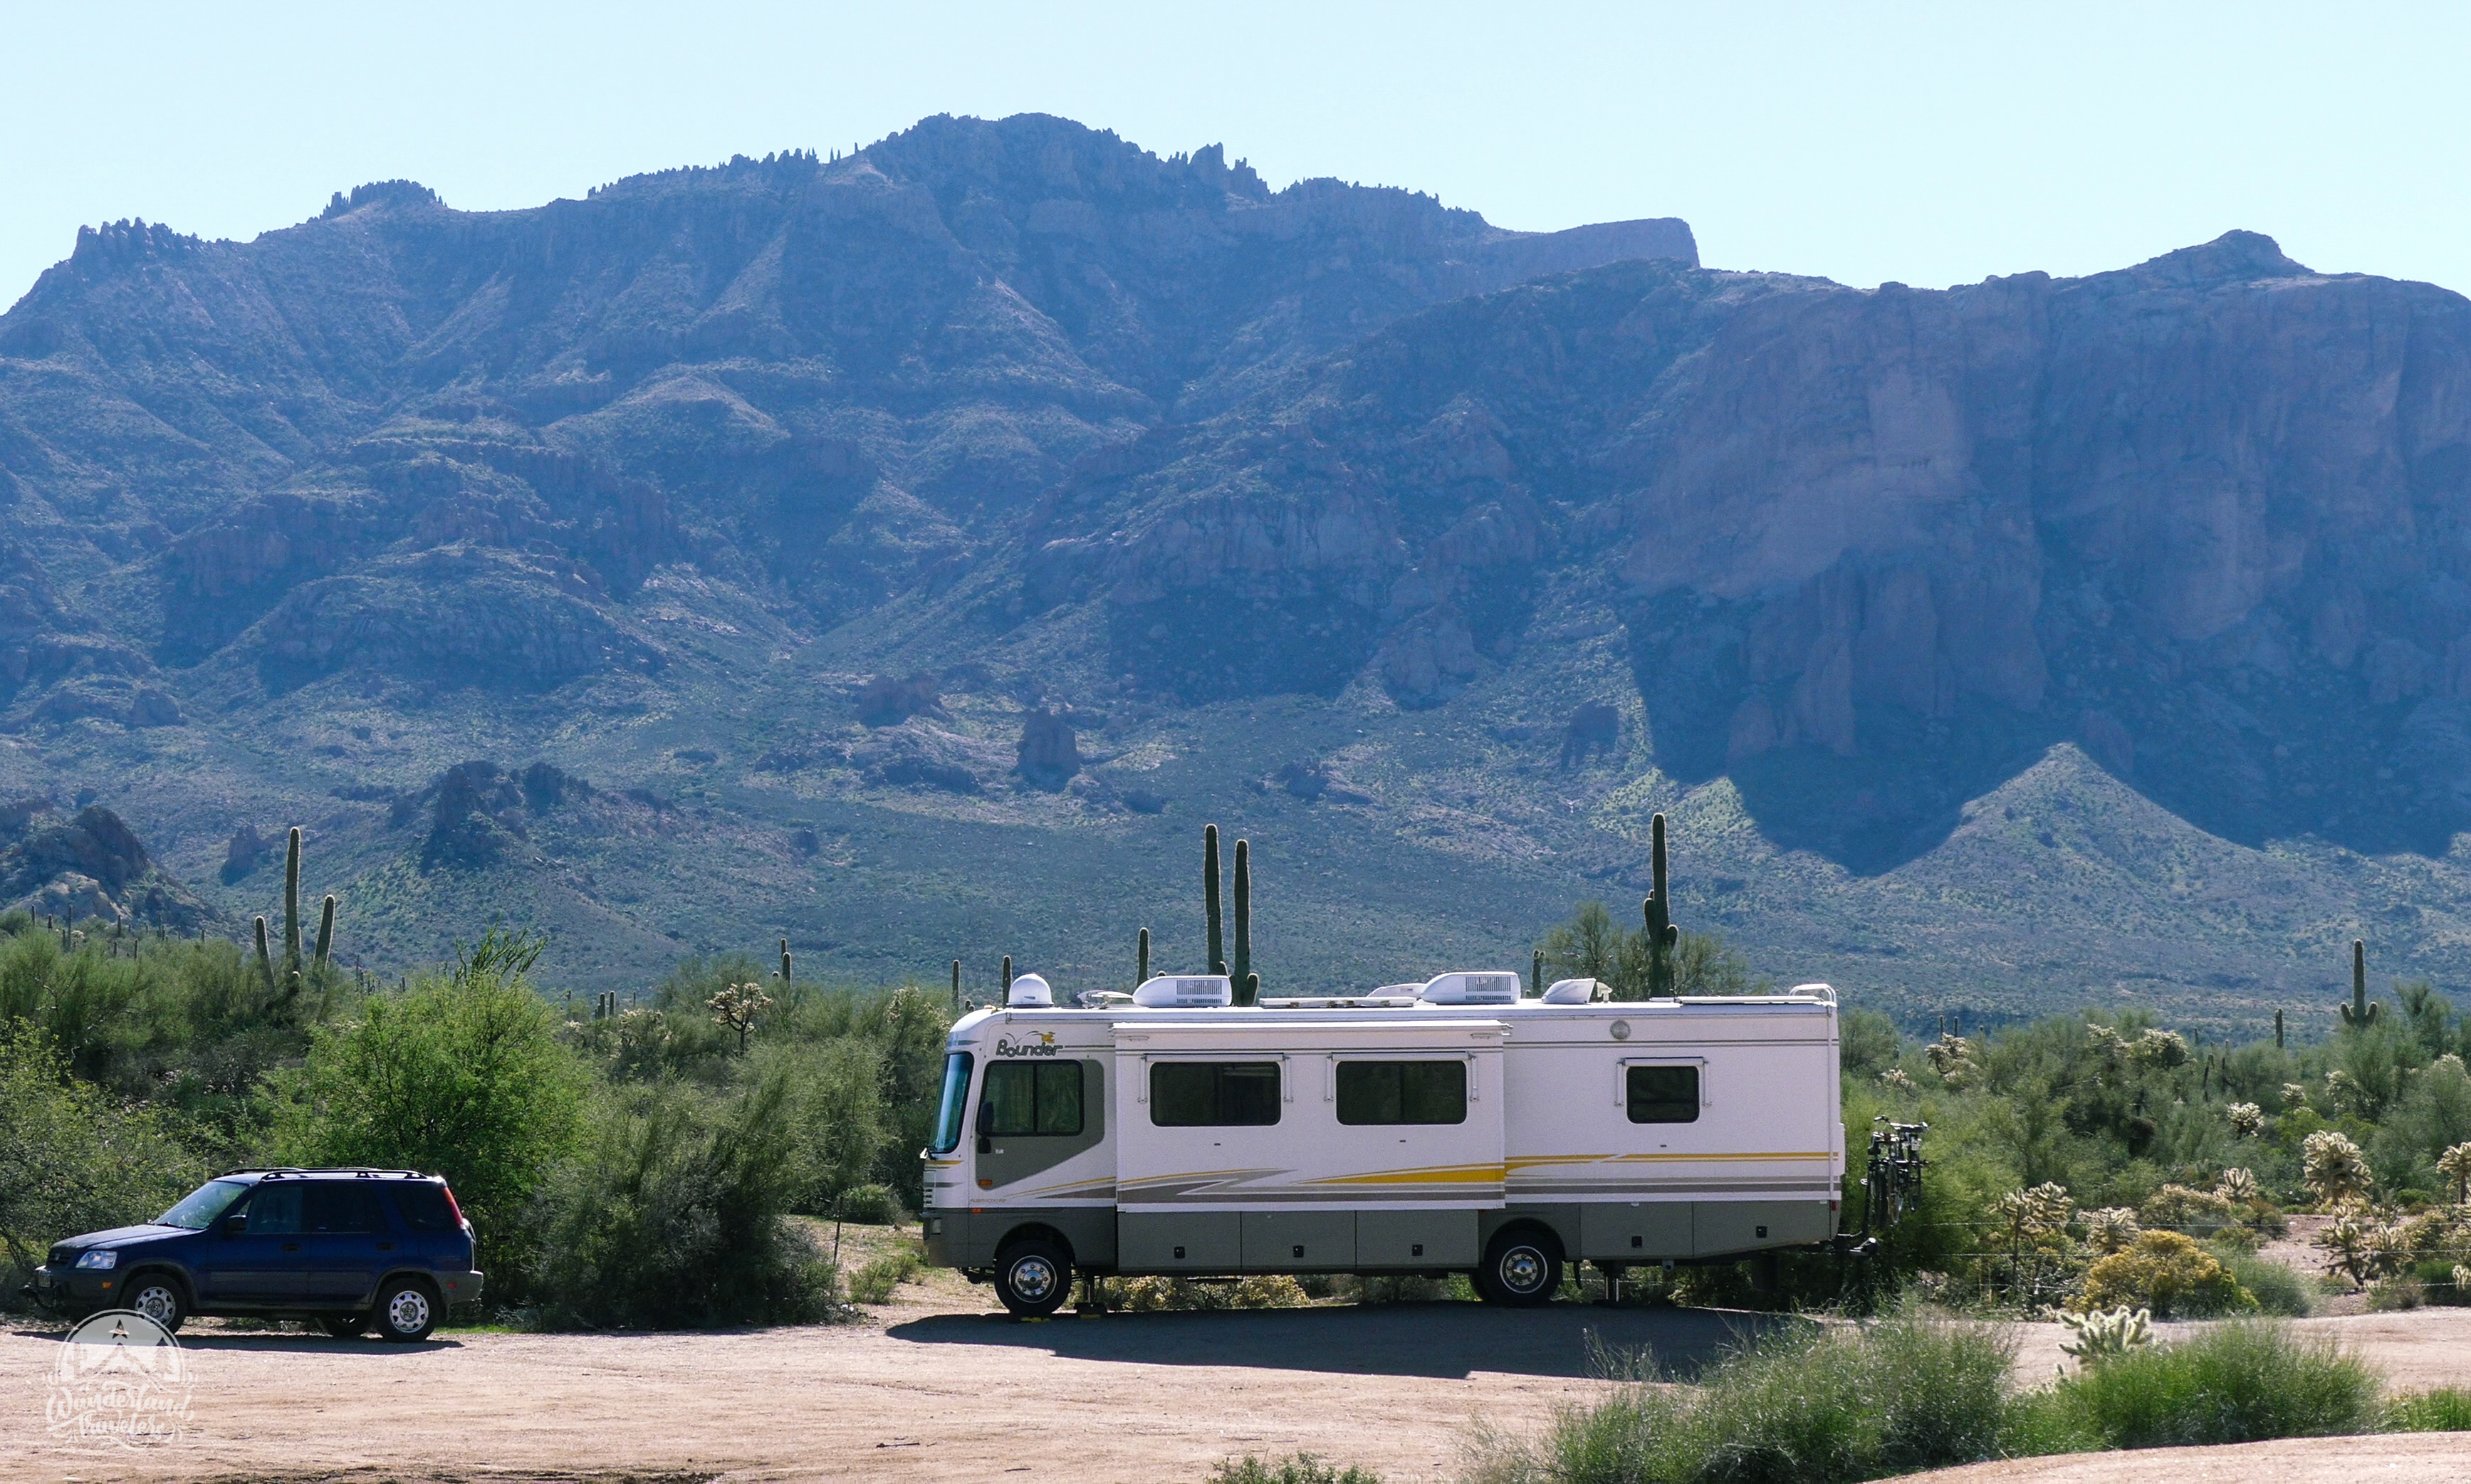 RV parked next to large mountains